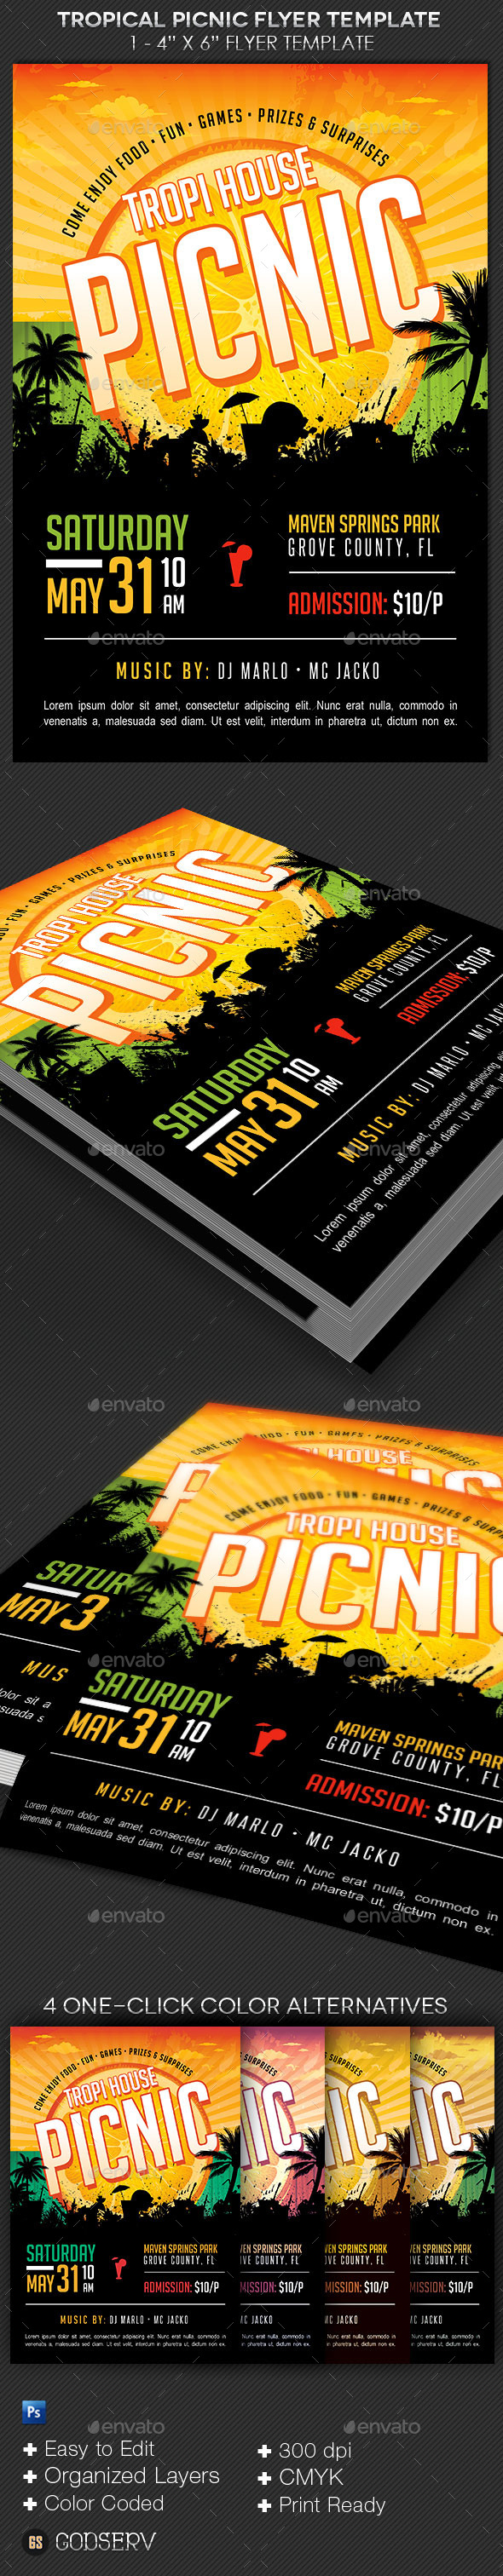 Tropical Picnic Flyer Template - Events Flyers